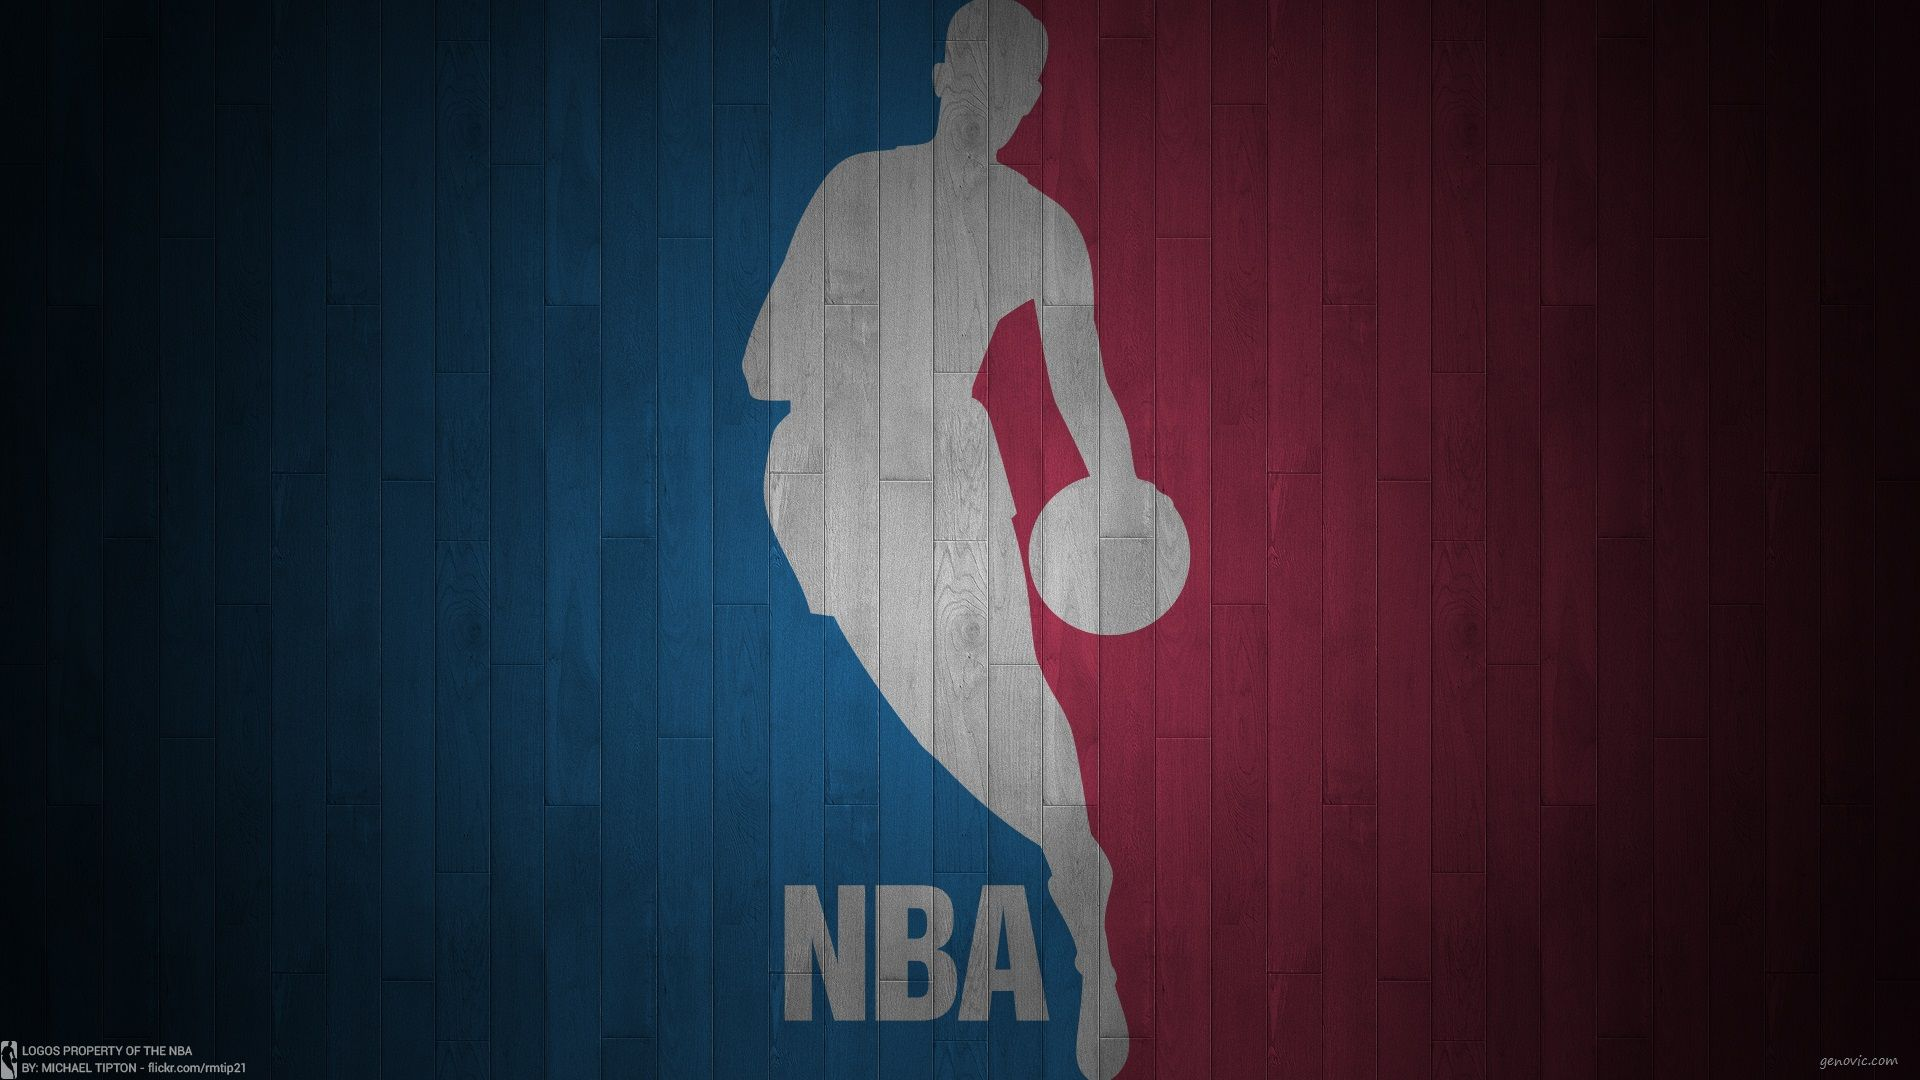 Hd wallpaper nba - Image For Nba Wallpaper Hd Logo 31 Guhpix Gallery Pinterest Nba Wallpapers And Nba